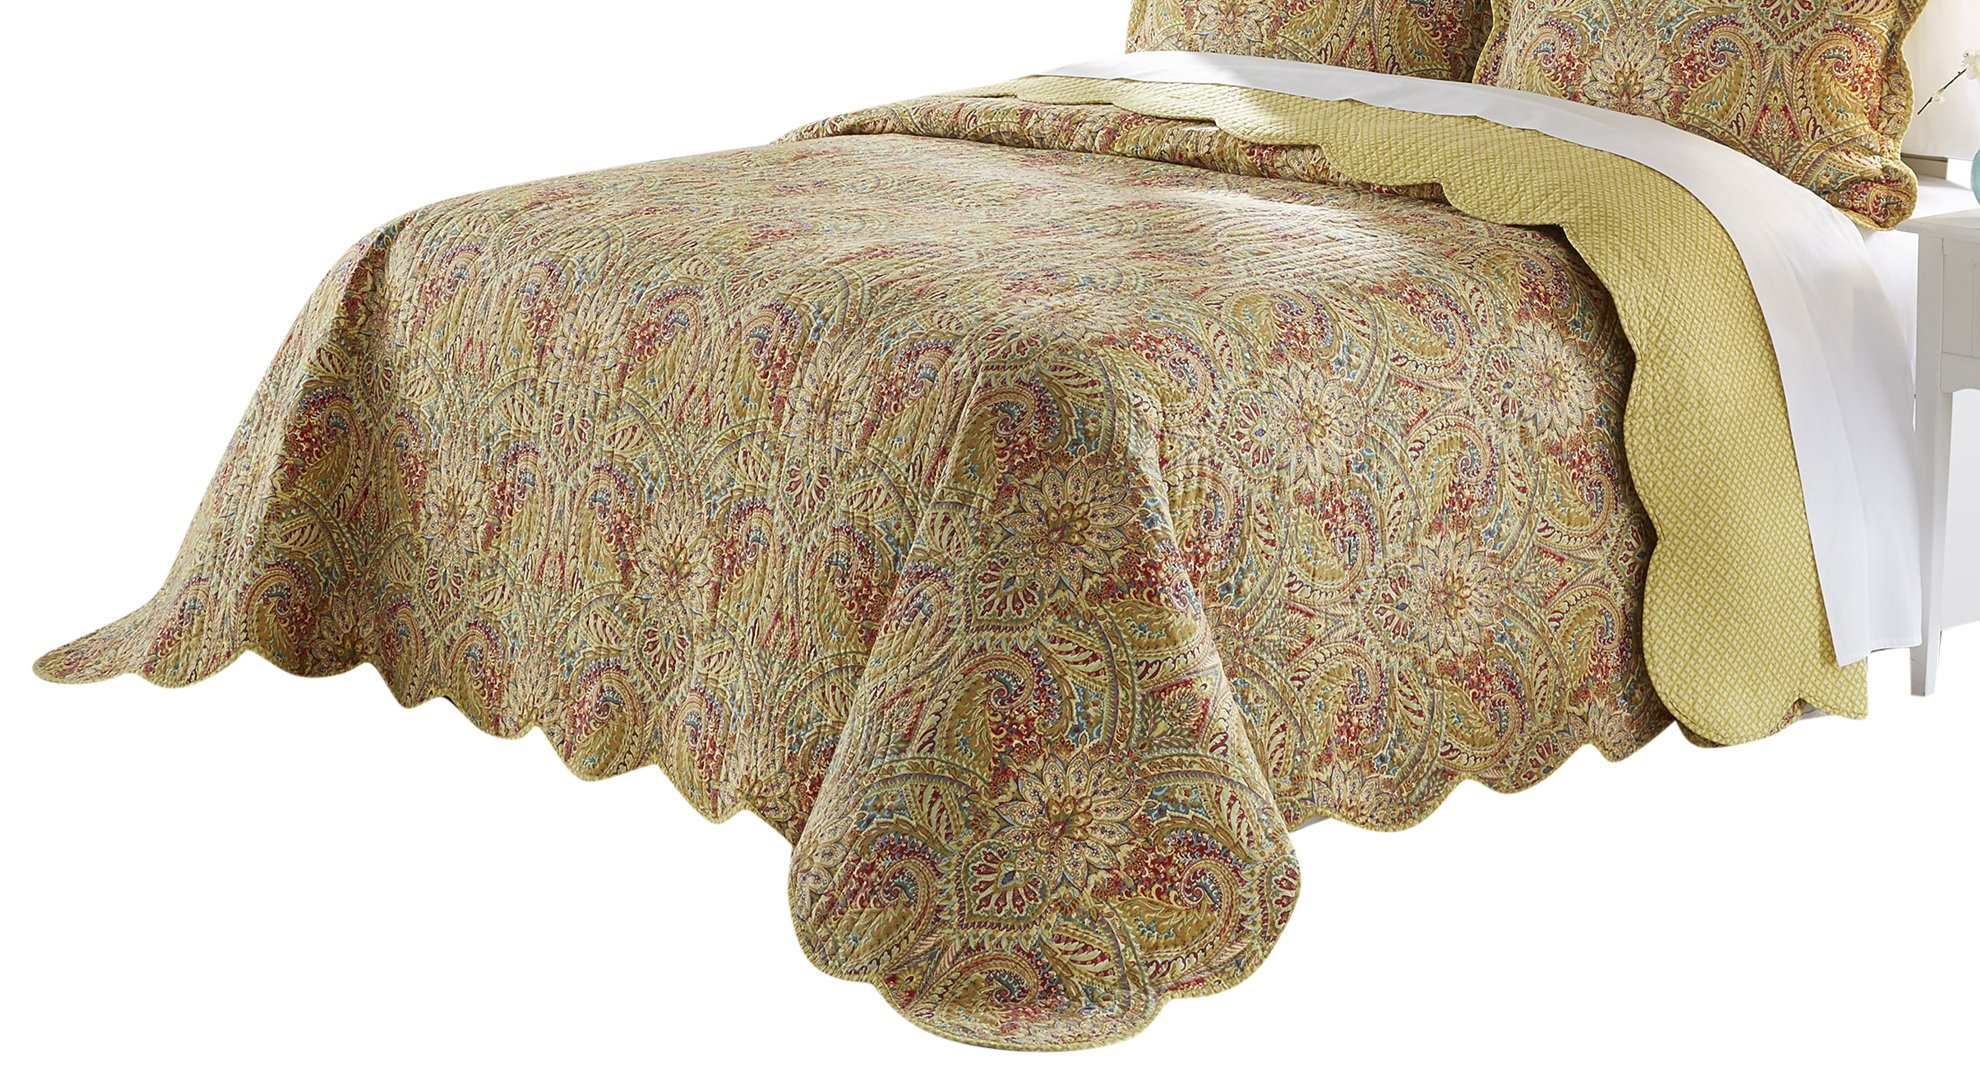 Waverly Swept Away Bedspread Collection, 110x120, Berry by Waverly (Image #2)